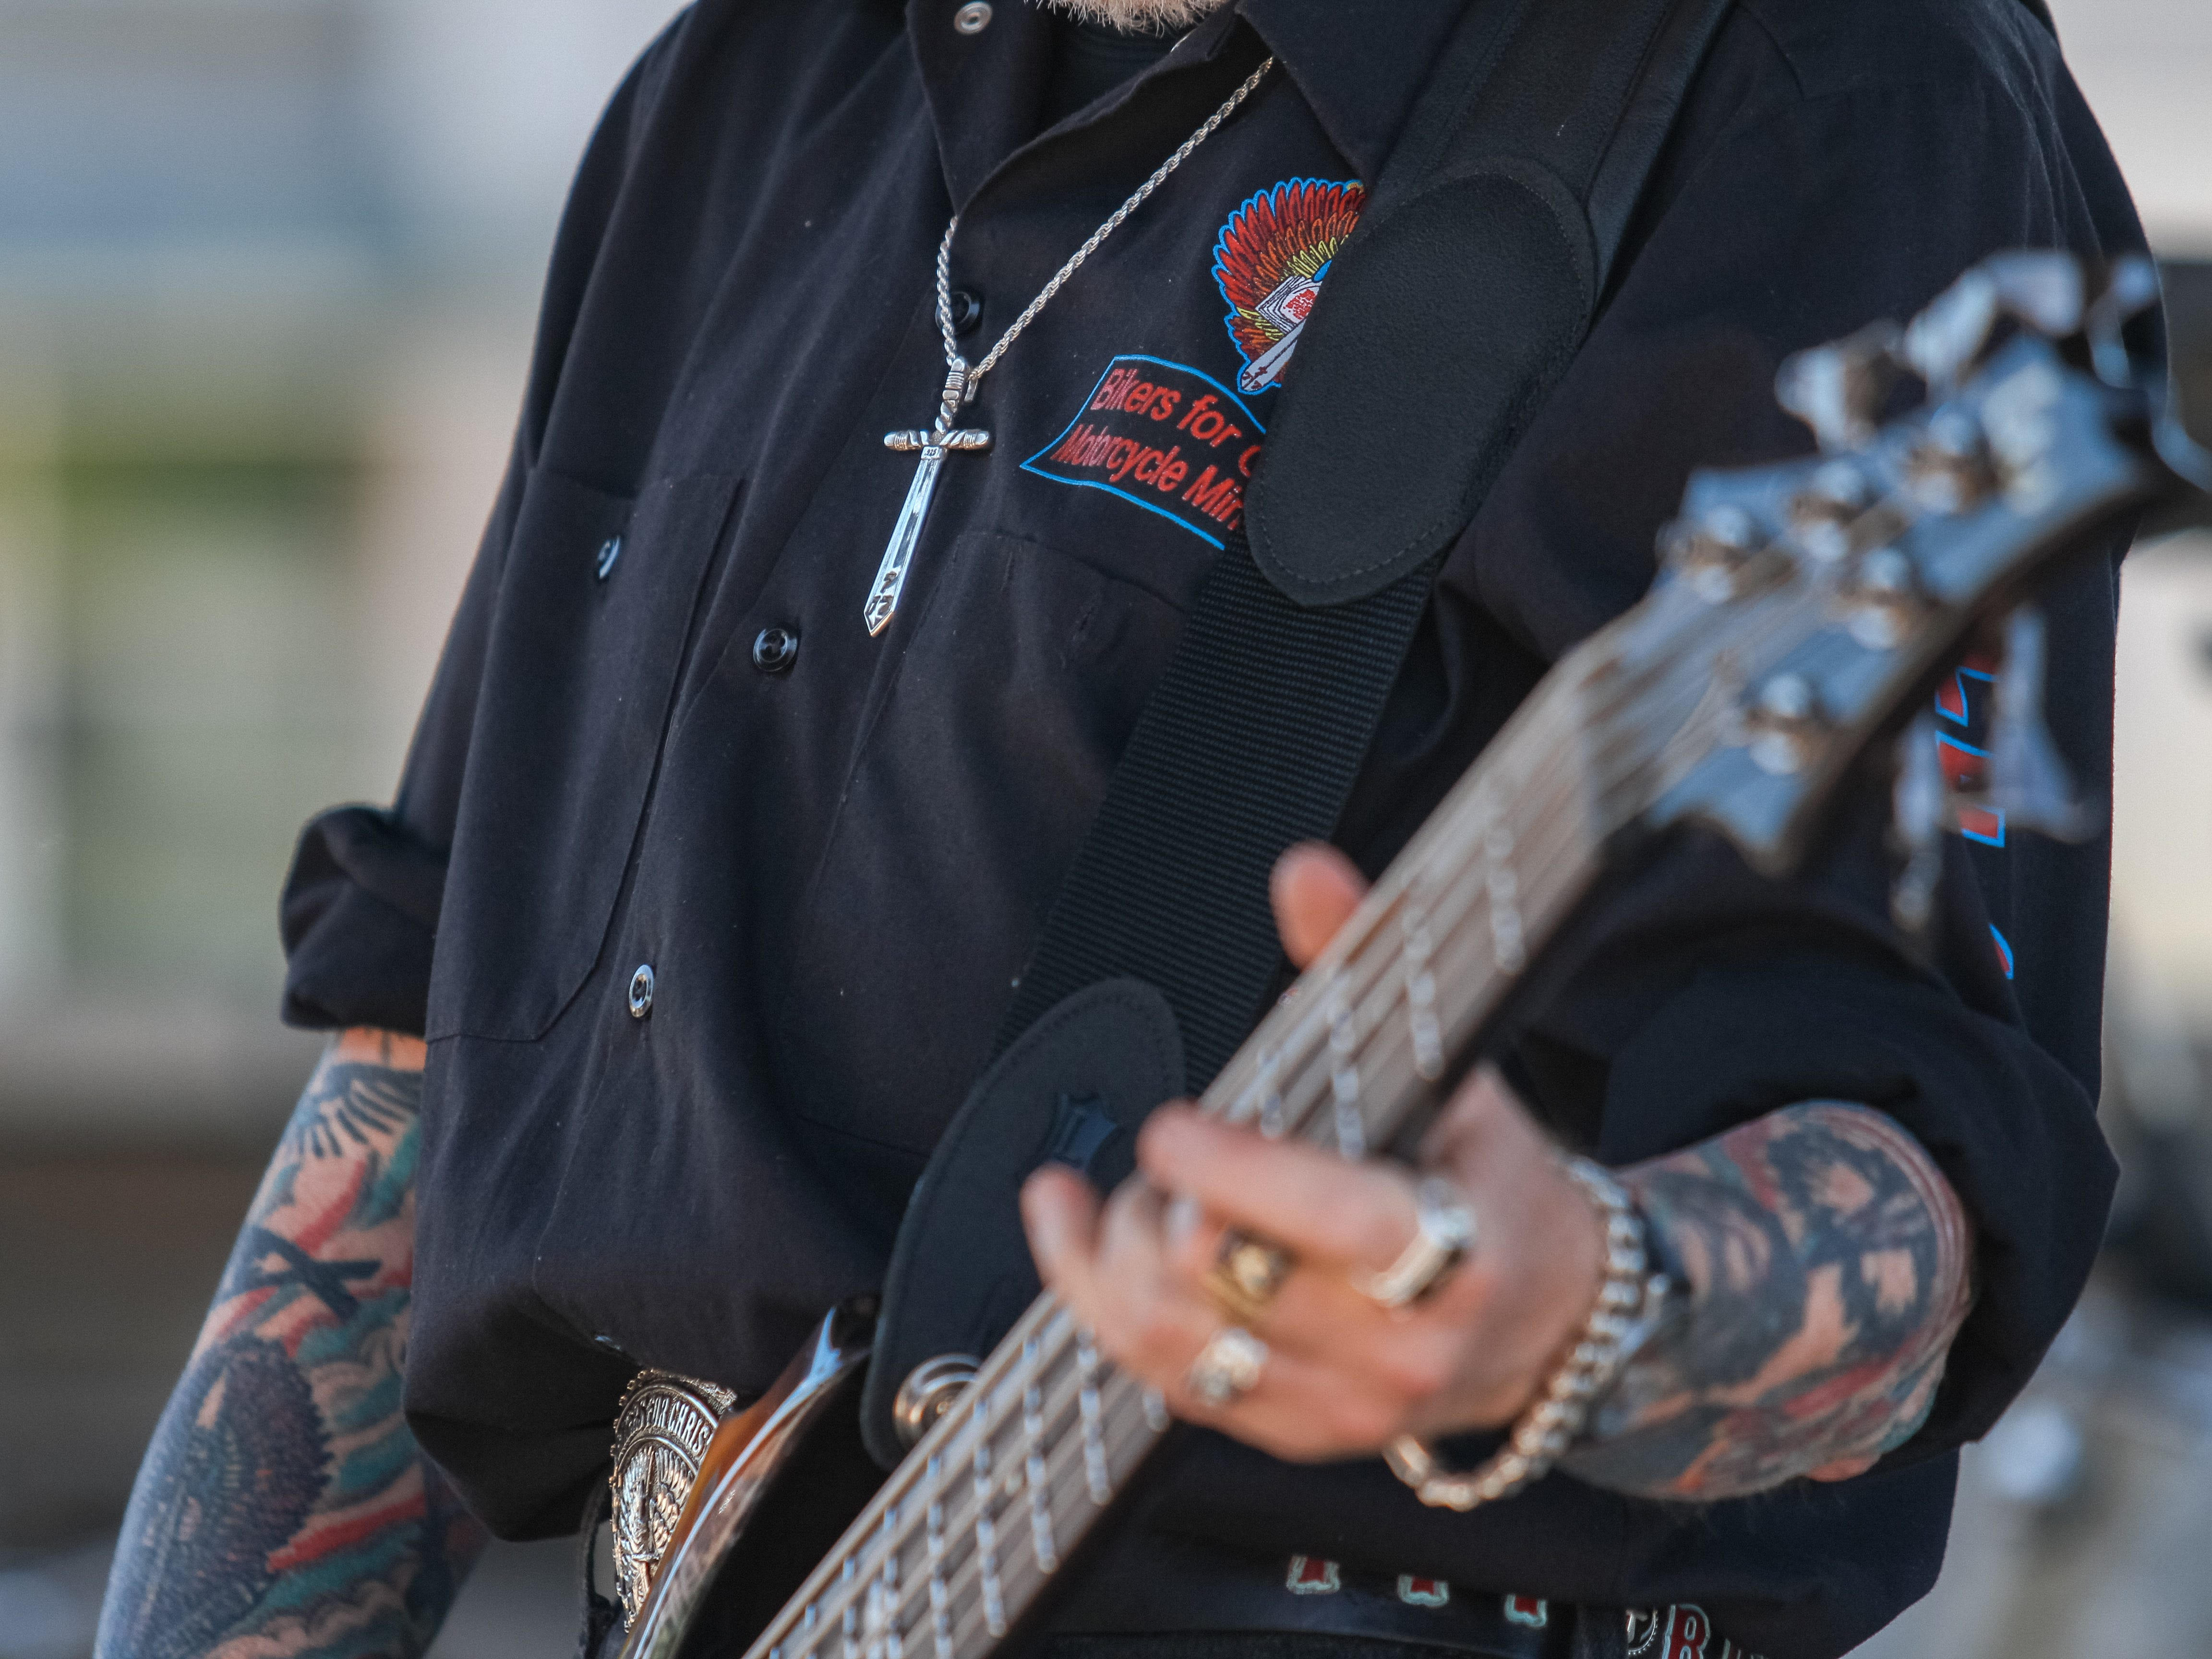 Pastor Z of the Full Throttle Band out of Southern California plays at the Harley Davidson of Scottsdale in Scottsdale on April 6, 2019.